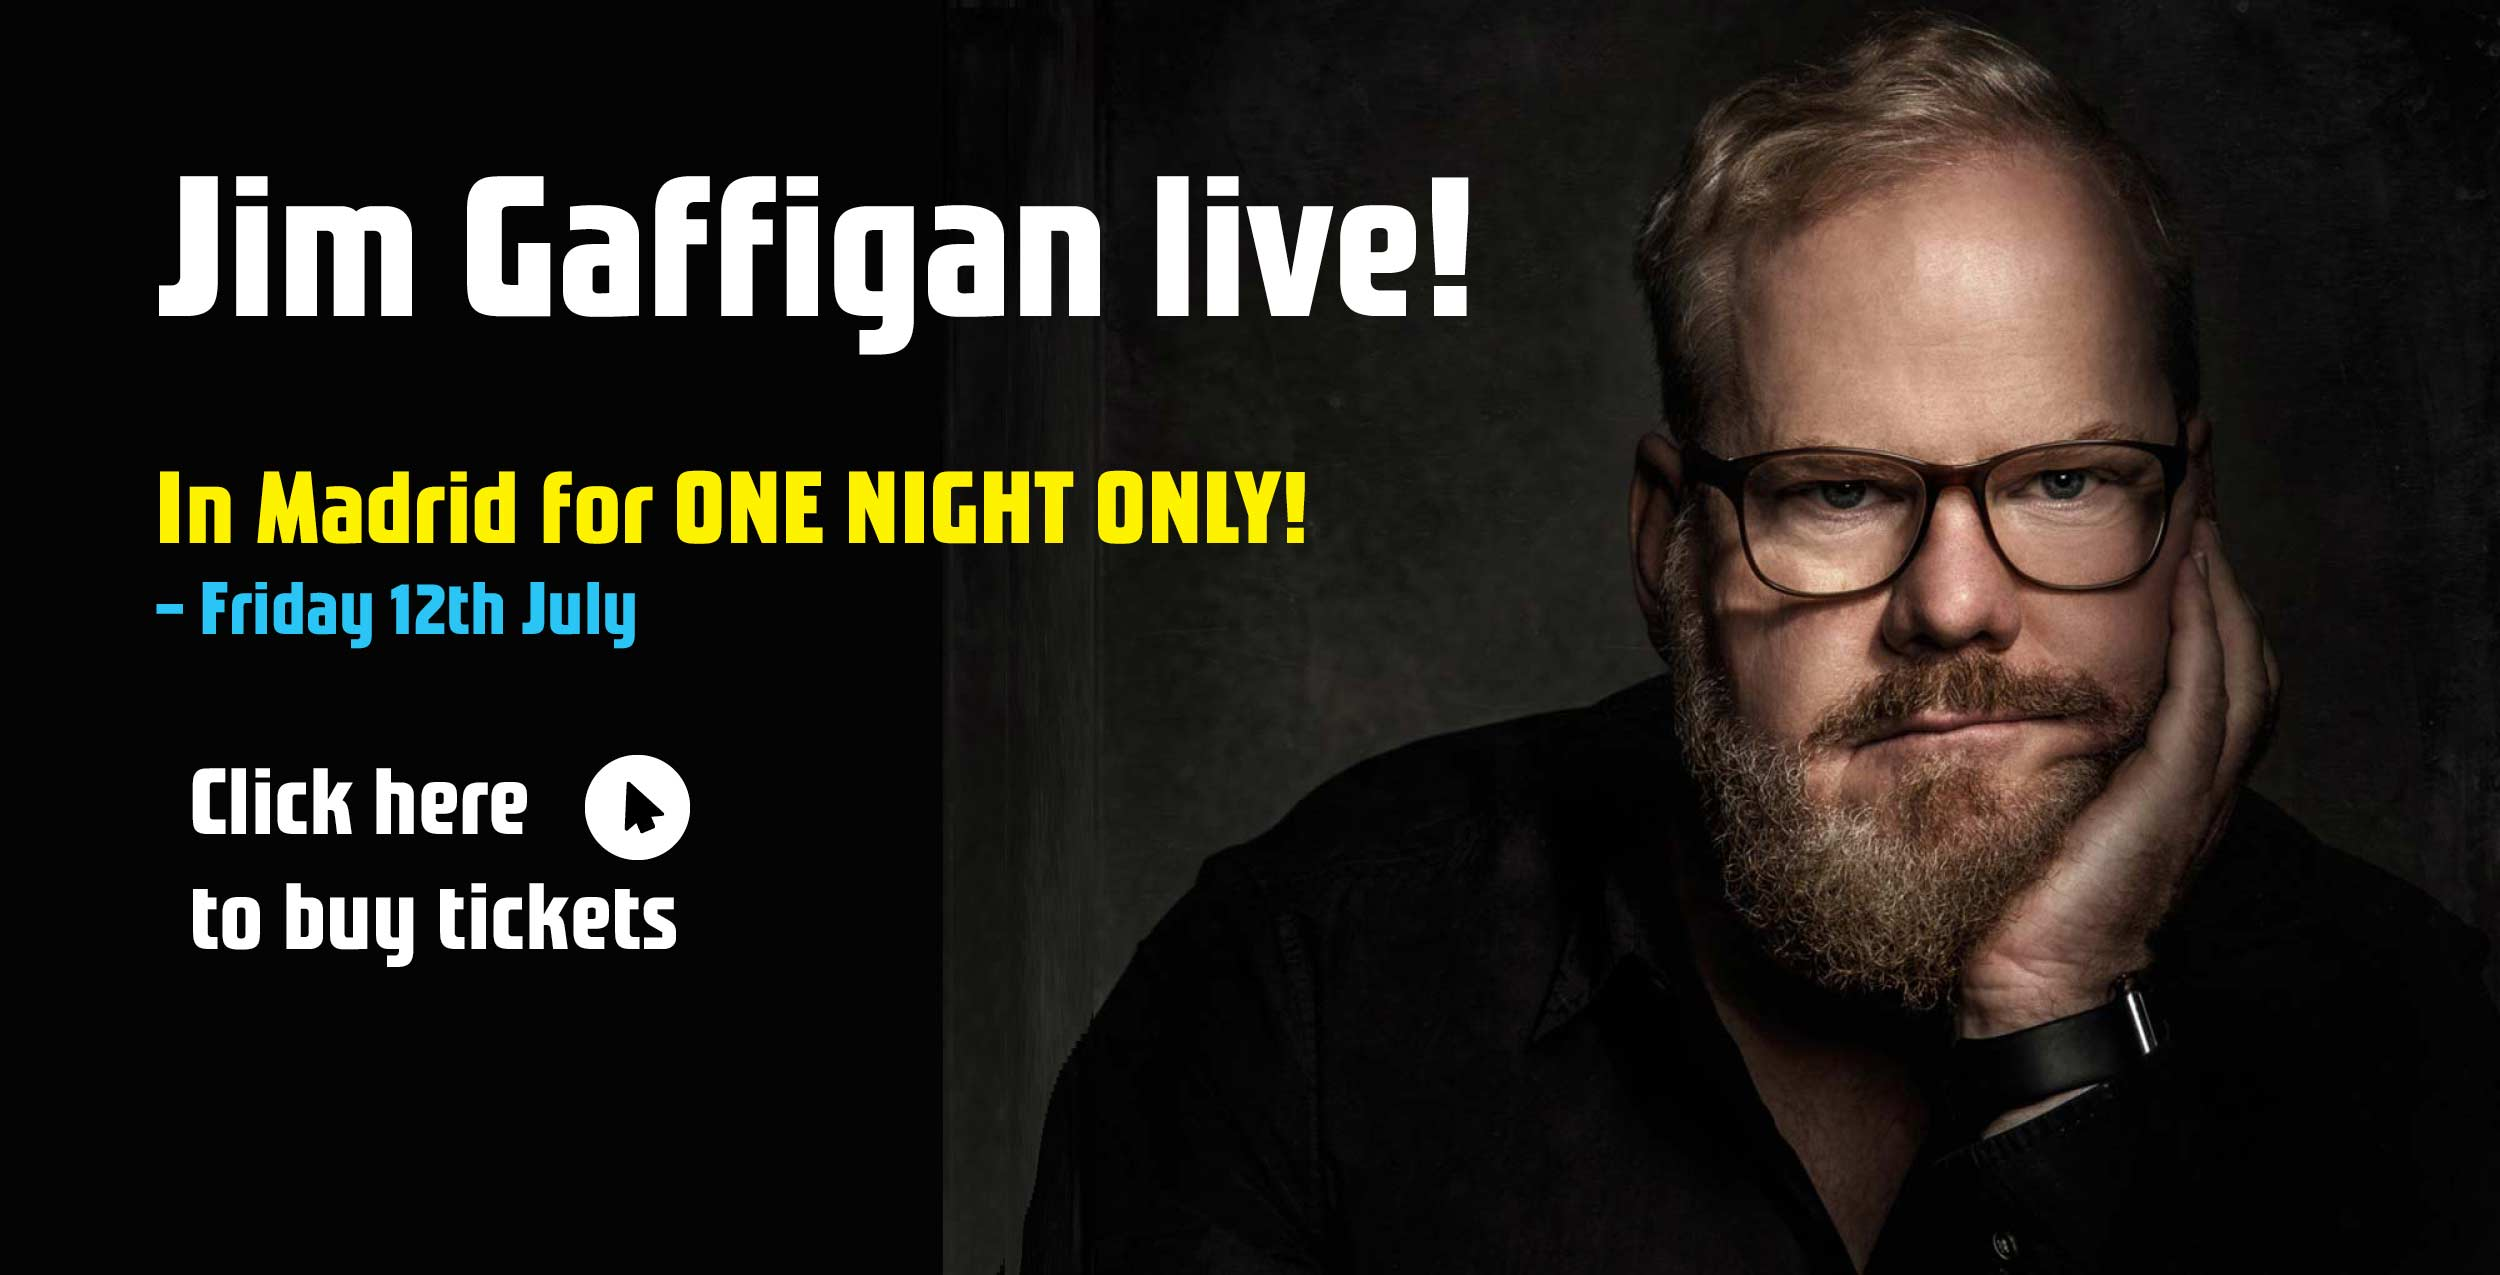 Buy tickets to Jim Gaffigan in Madrid